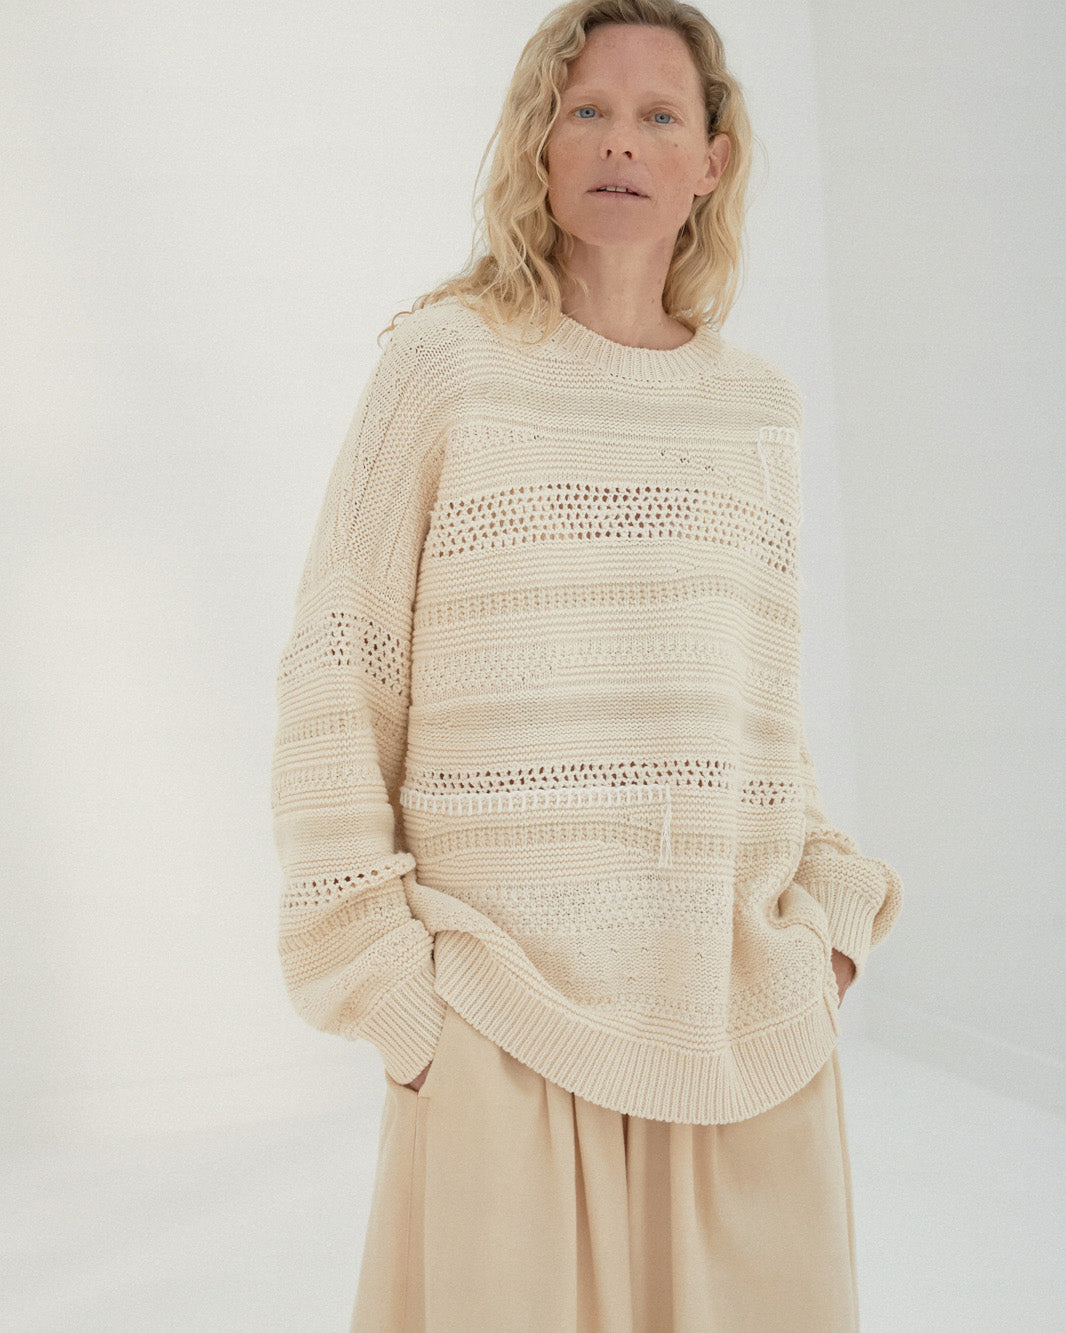 Natural Patched Sweater